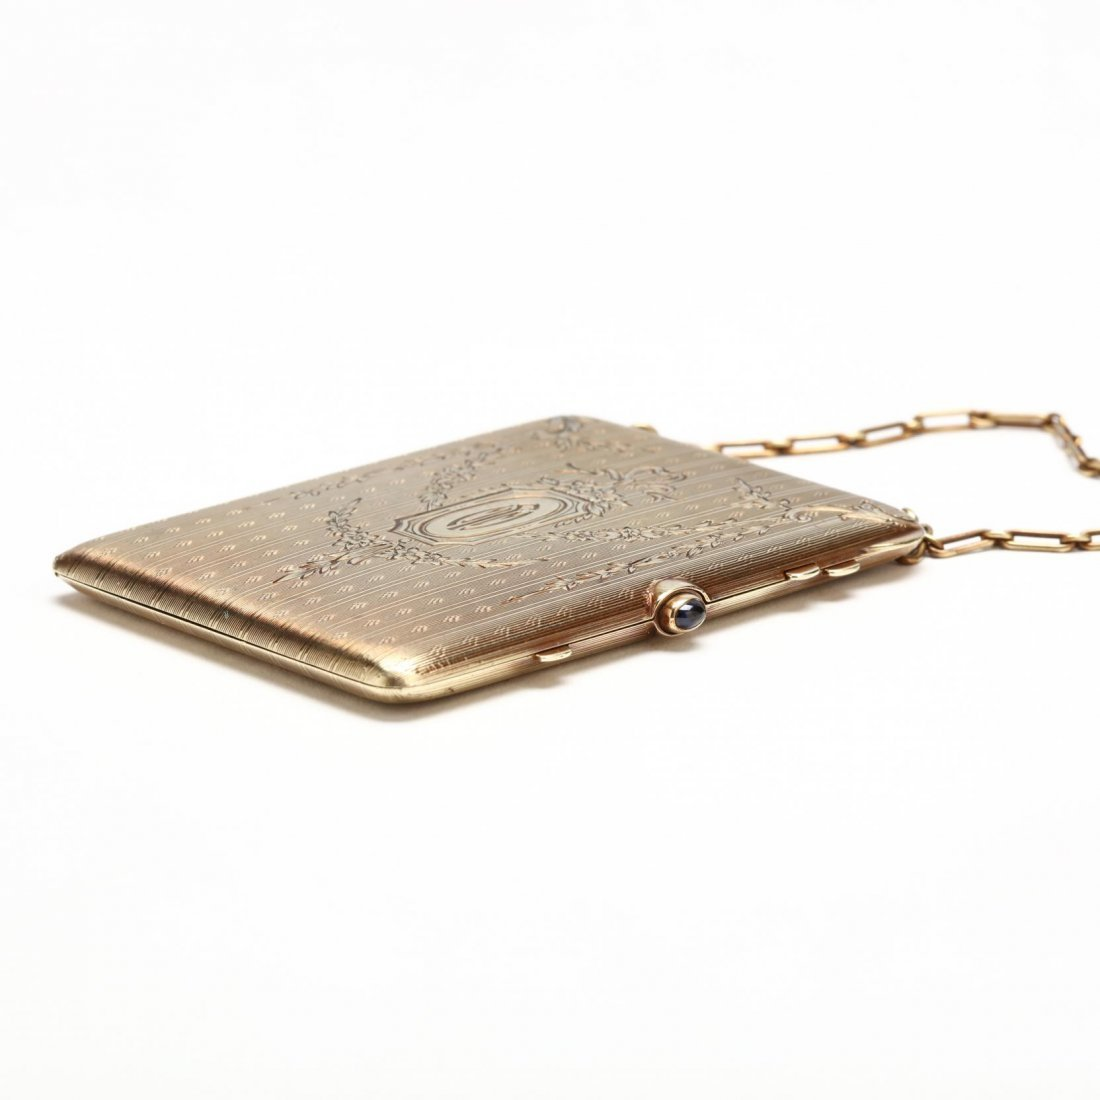 Edwardian 14KT Compact with Chain and Ring, Tiffany & - 2